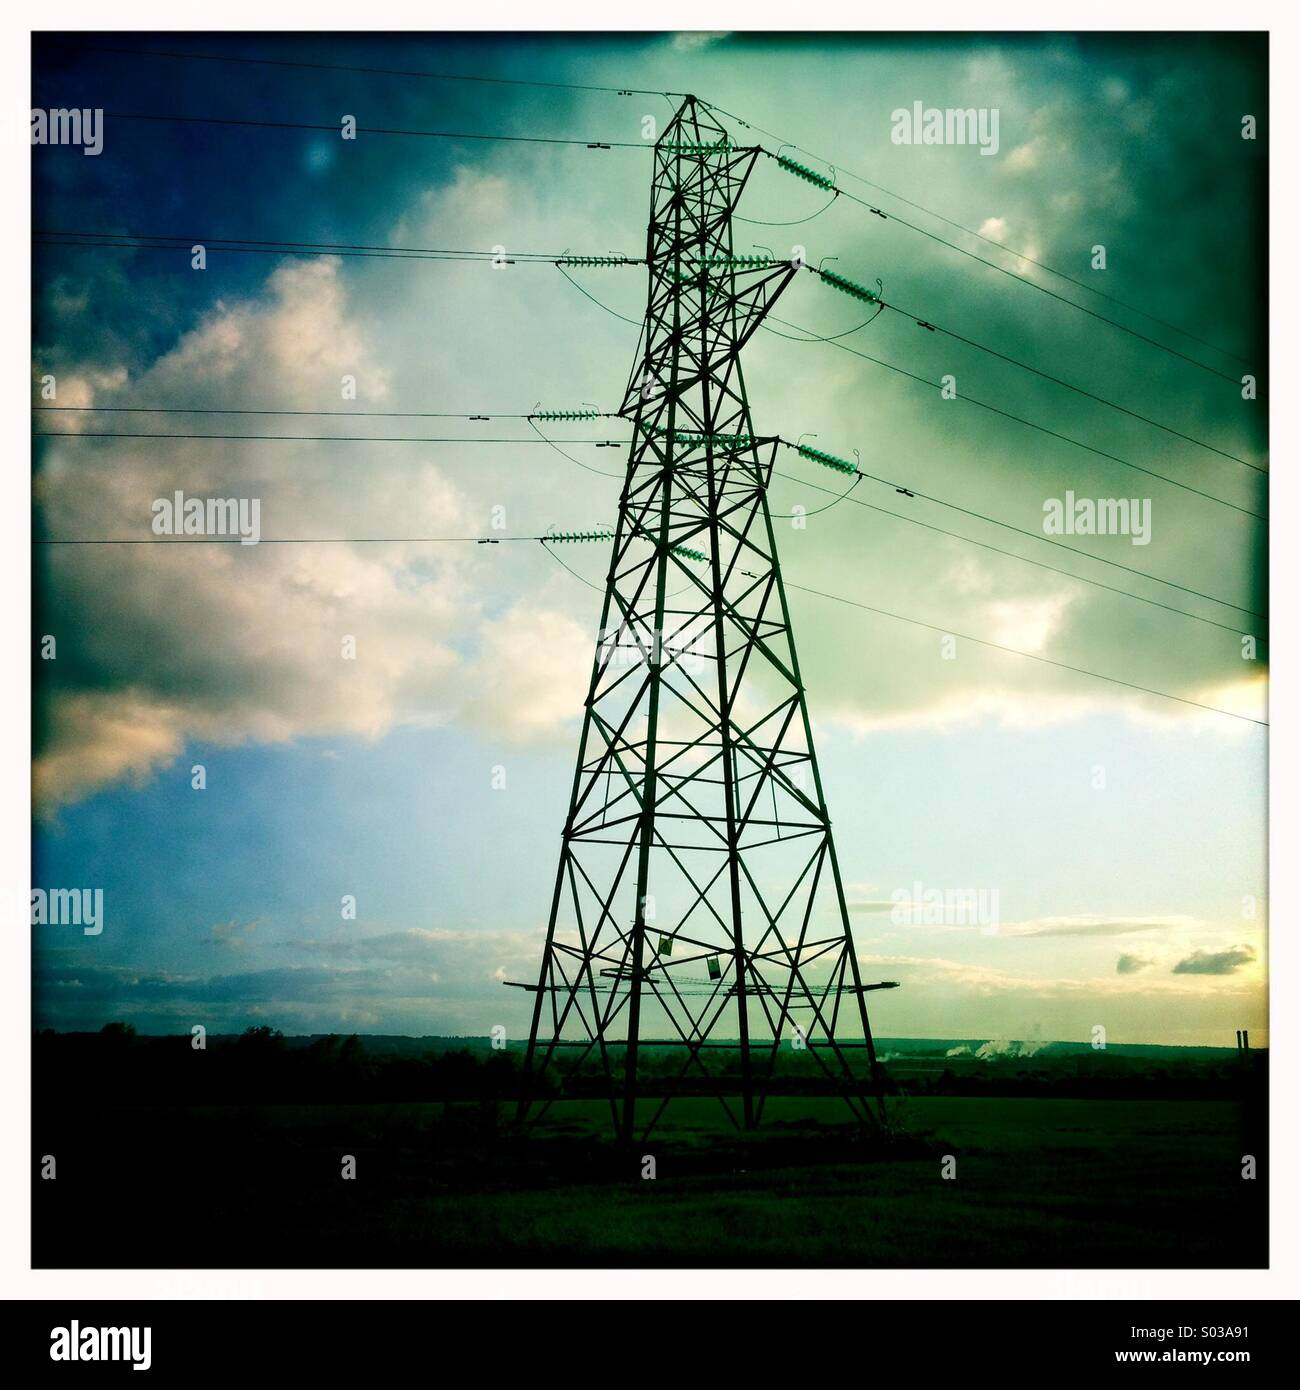 Electricity pylon dark against low sun of an early evening sky - Stock Image